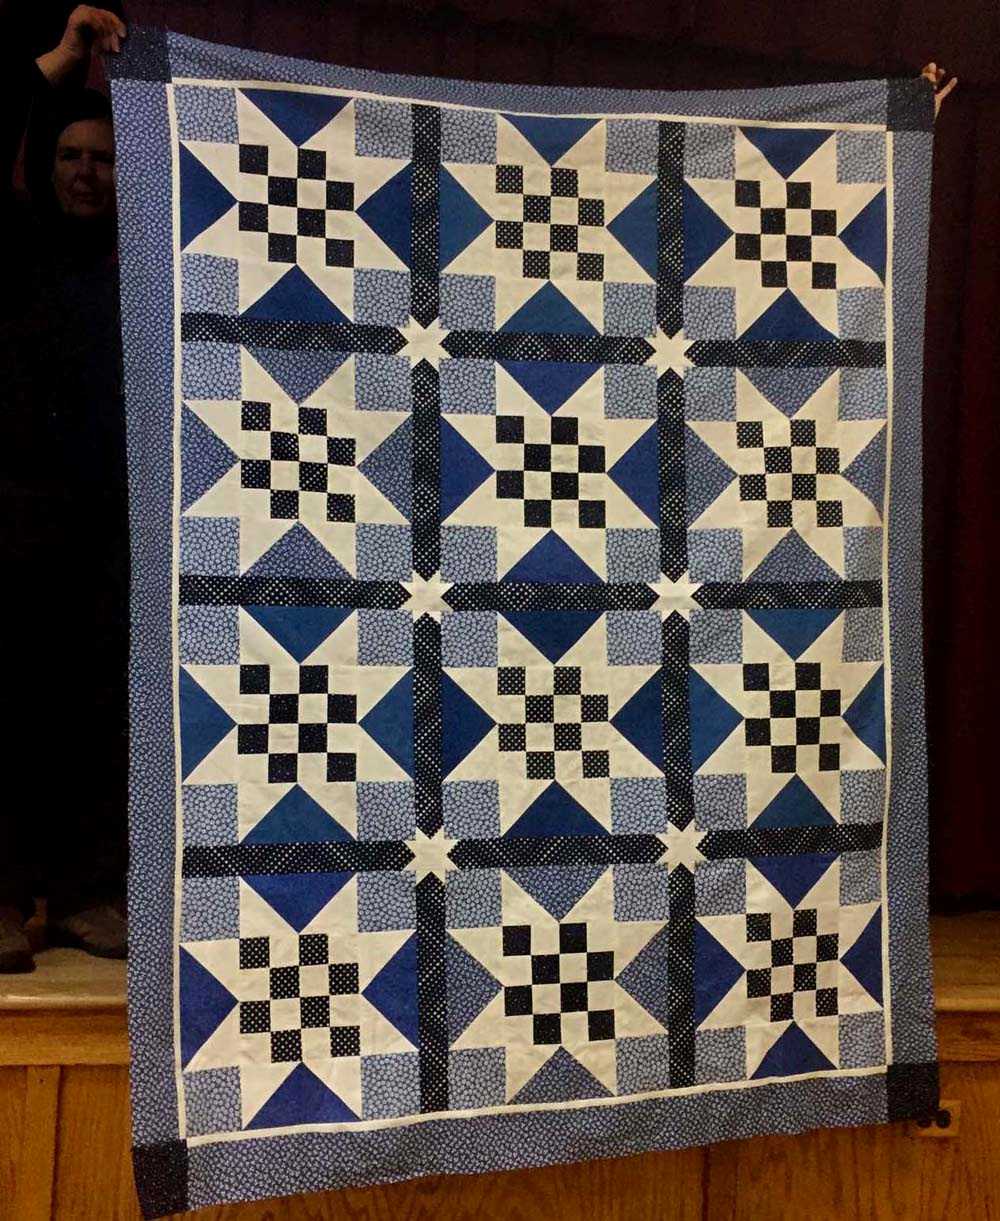 A H.O.P.S. quilt made by Valerie Turer.